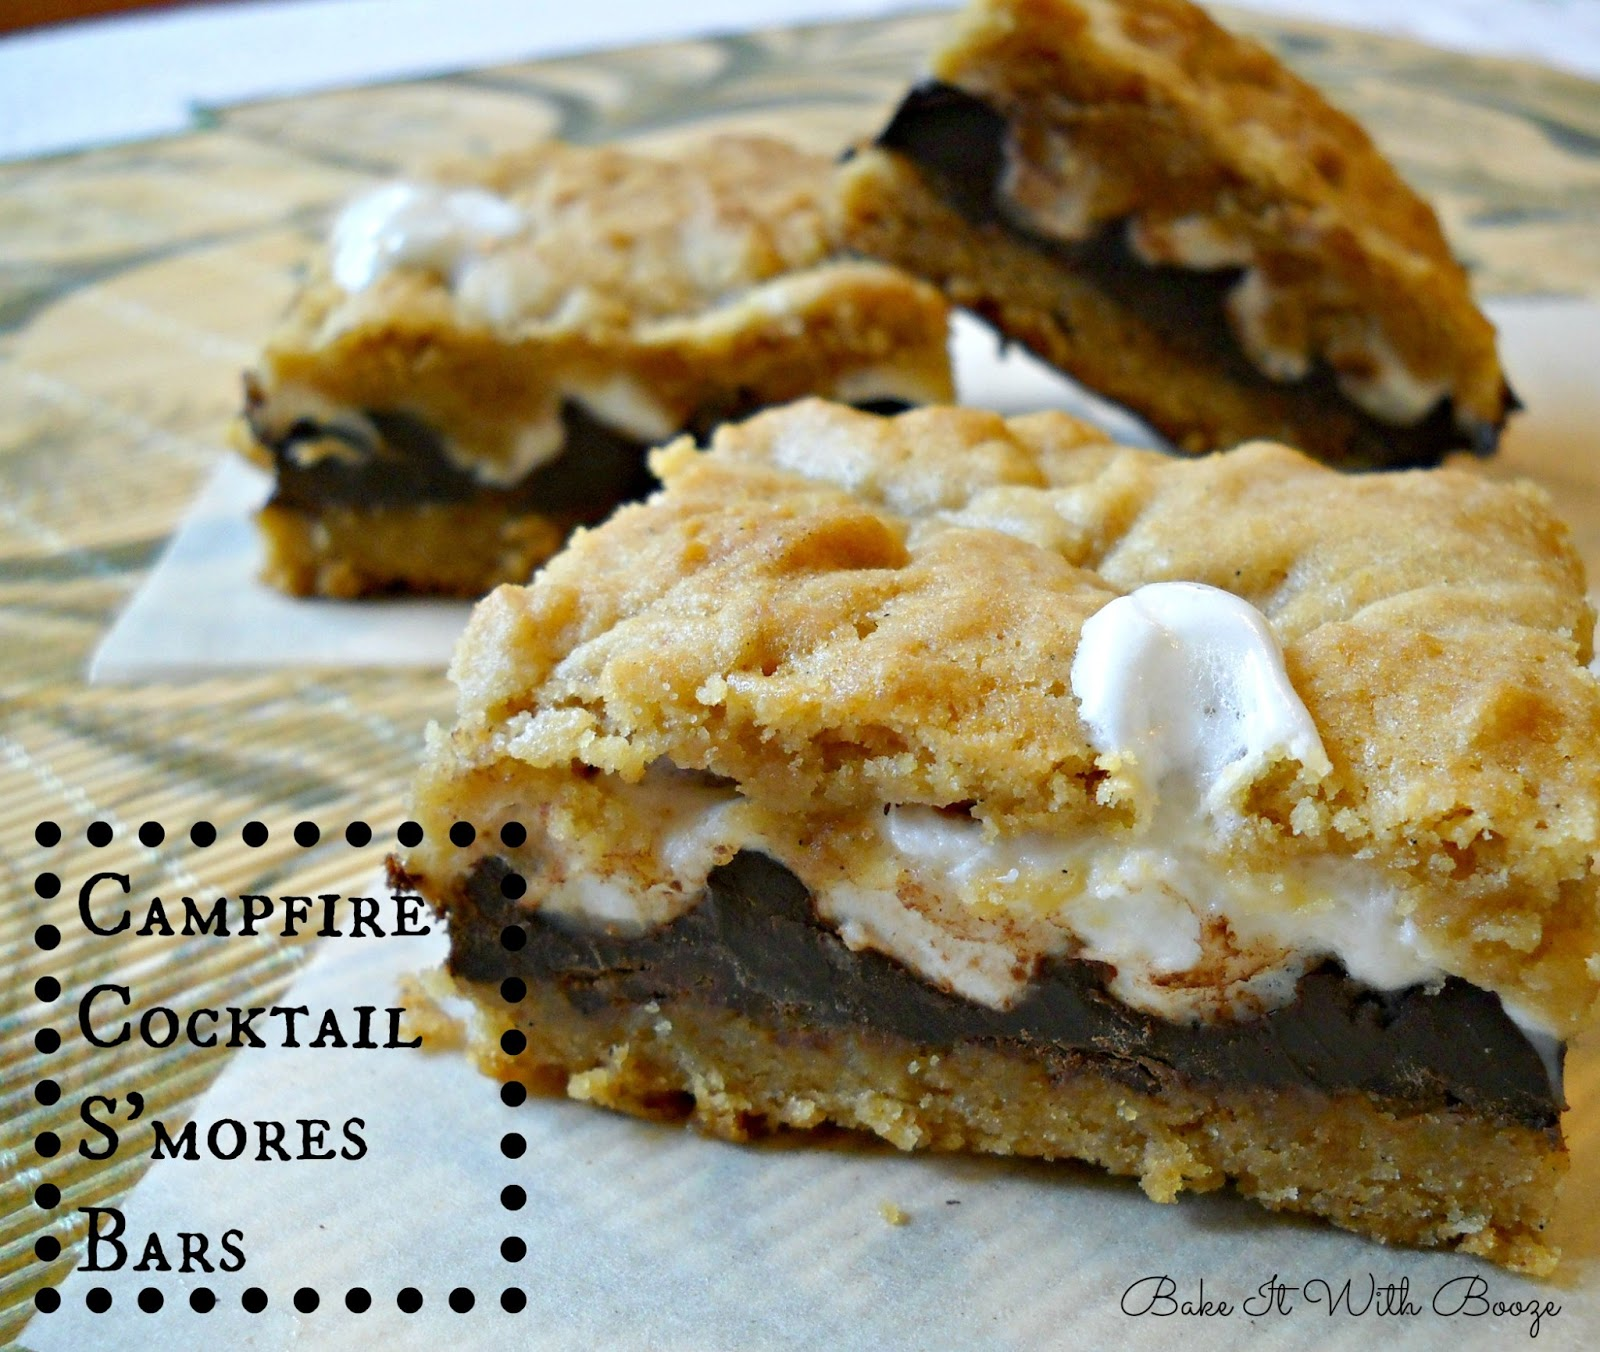 Campfire Cocktail S'mores Bars